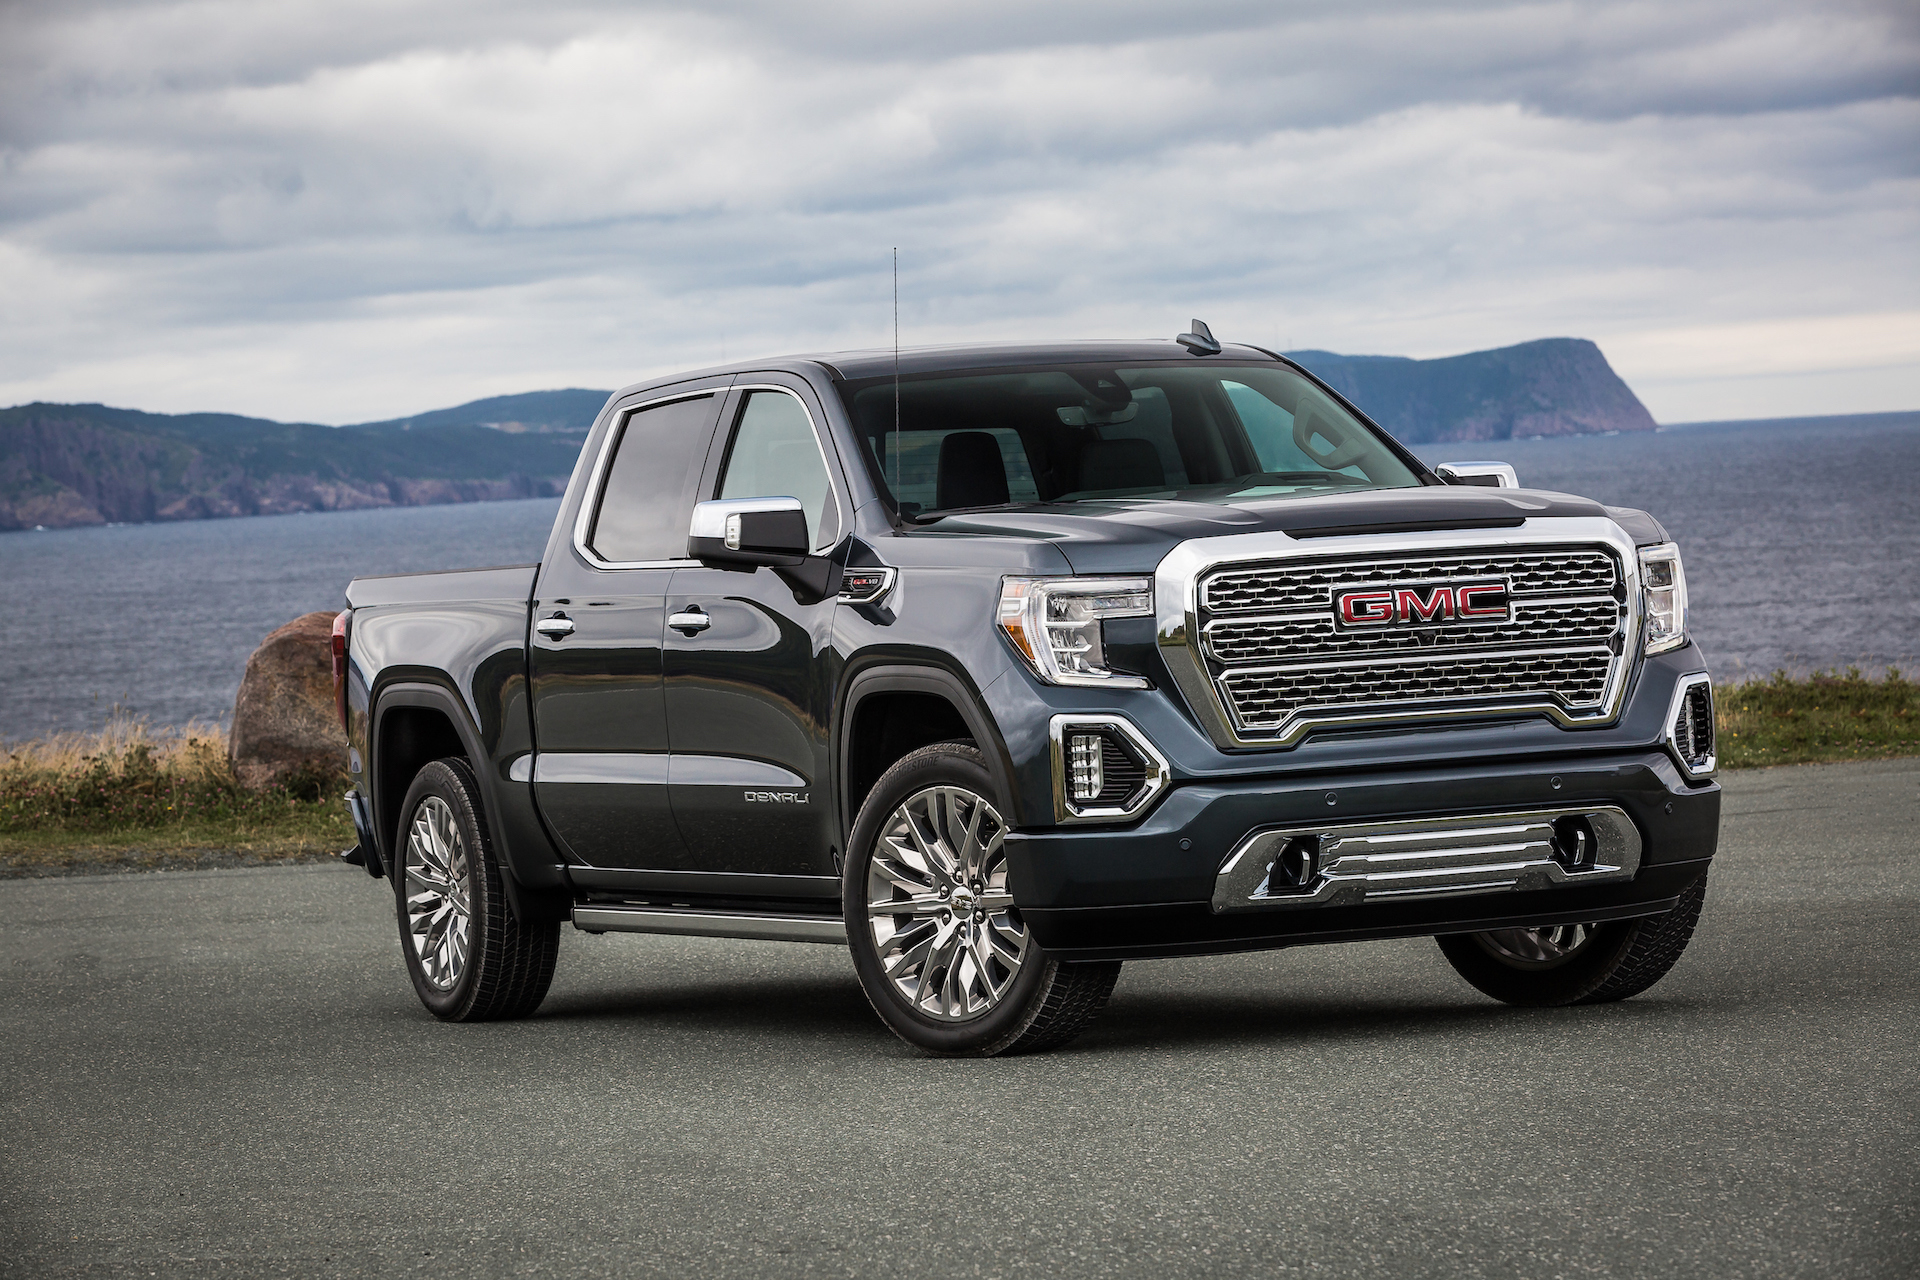 GM CEO confirms plans to build Chevy or GMC electric pickup